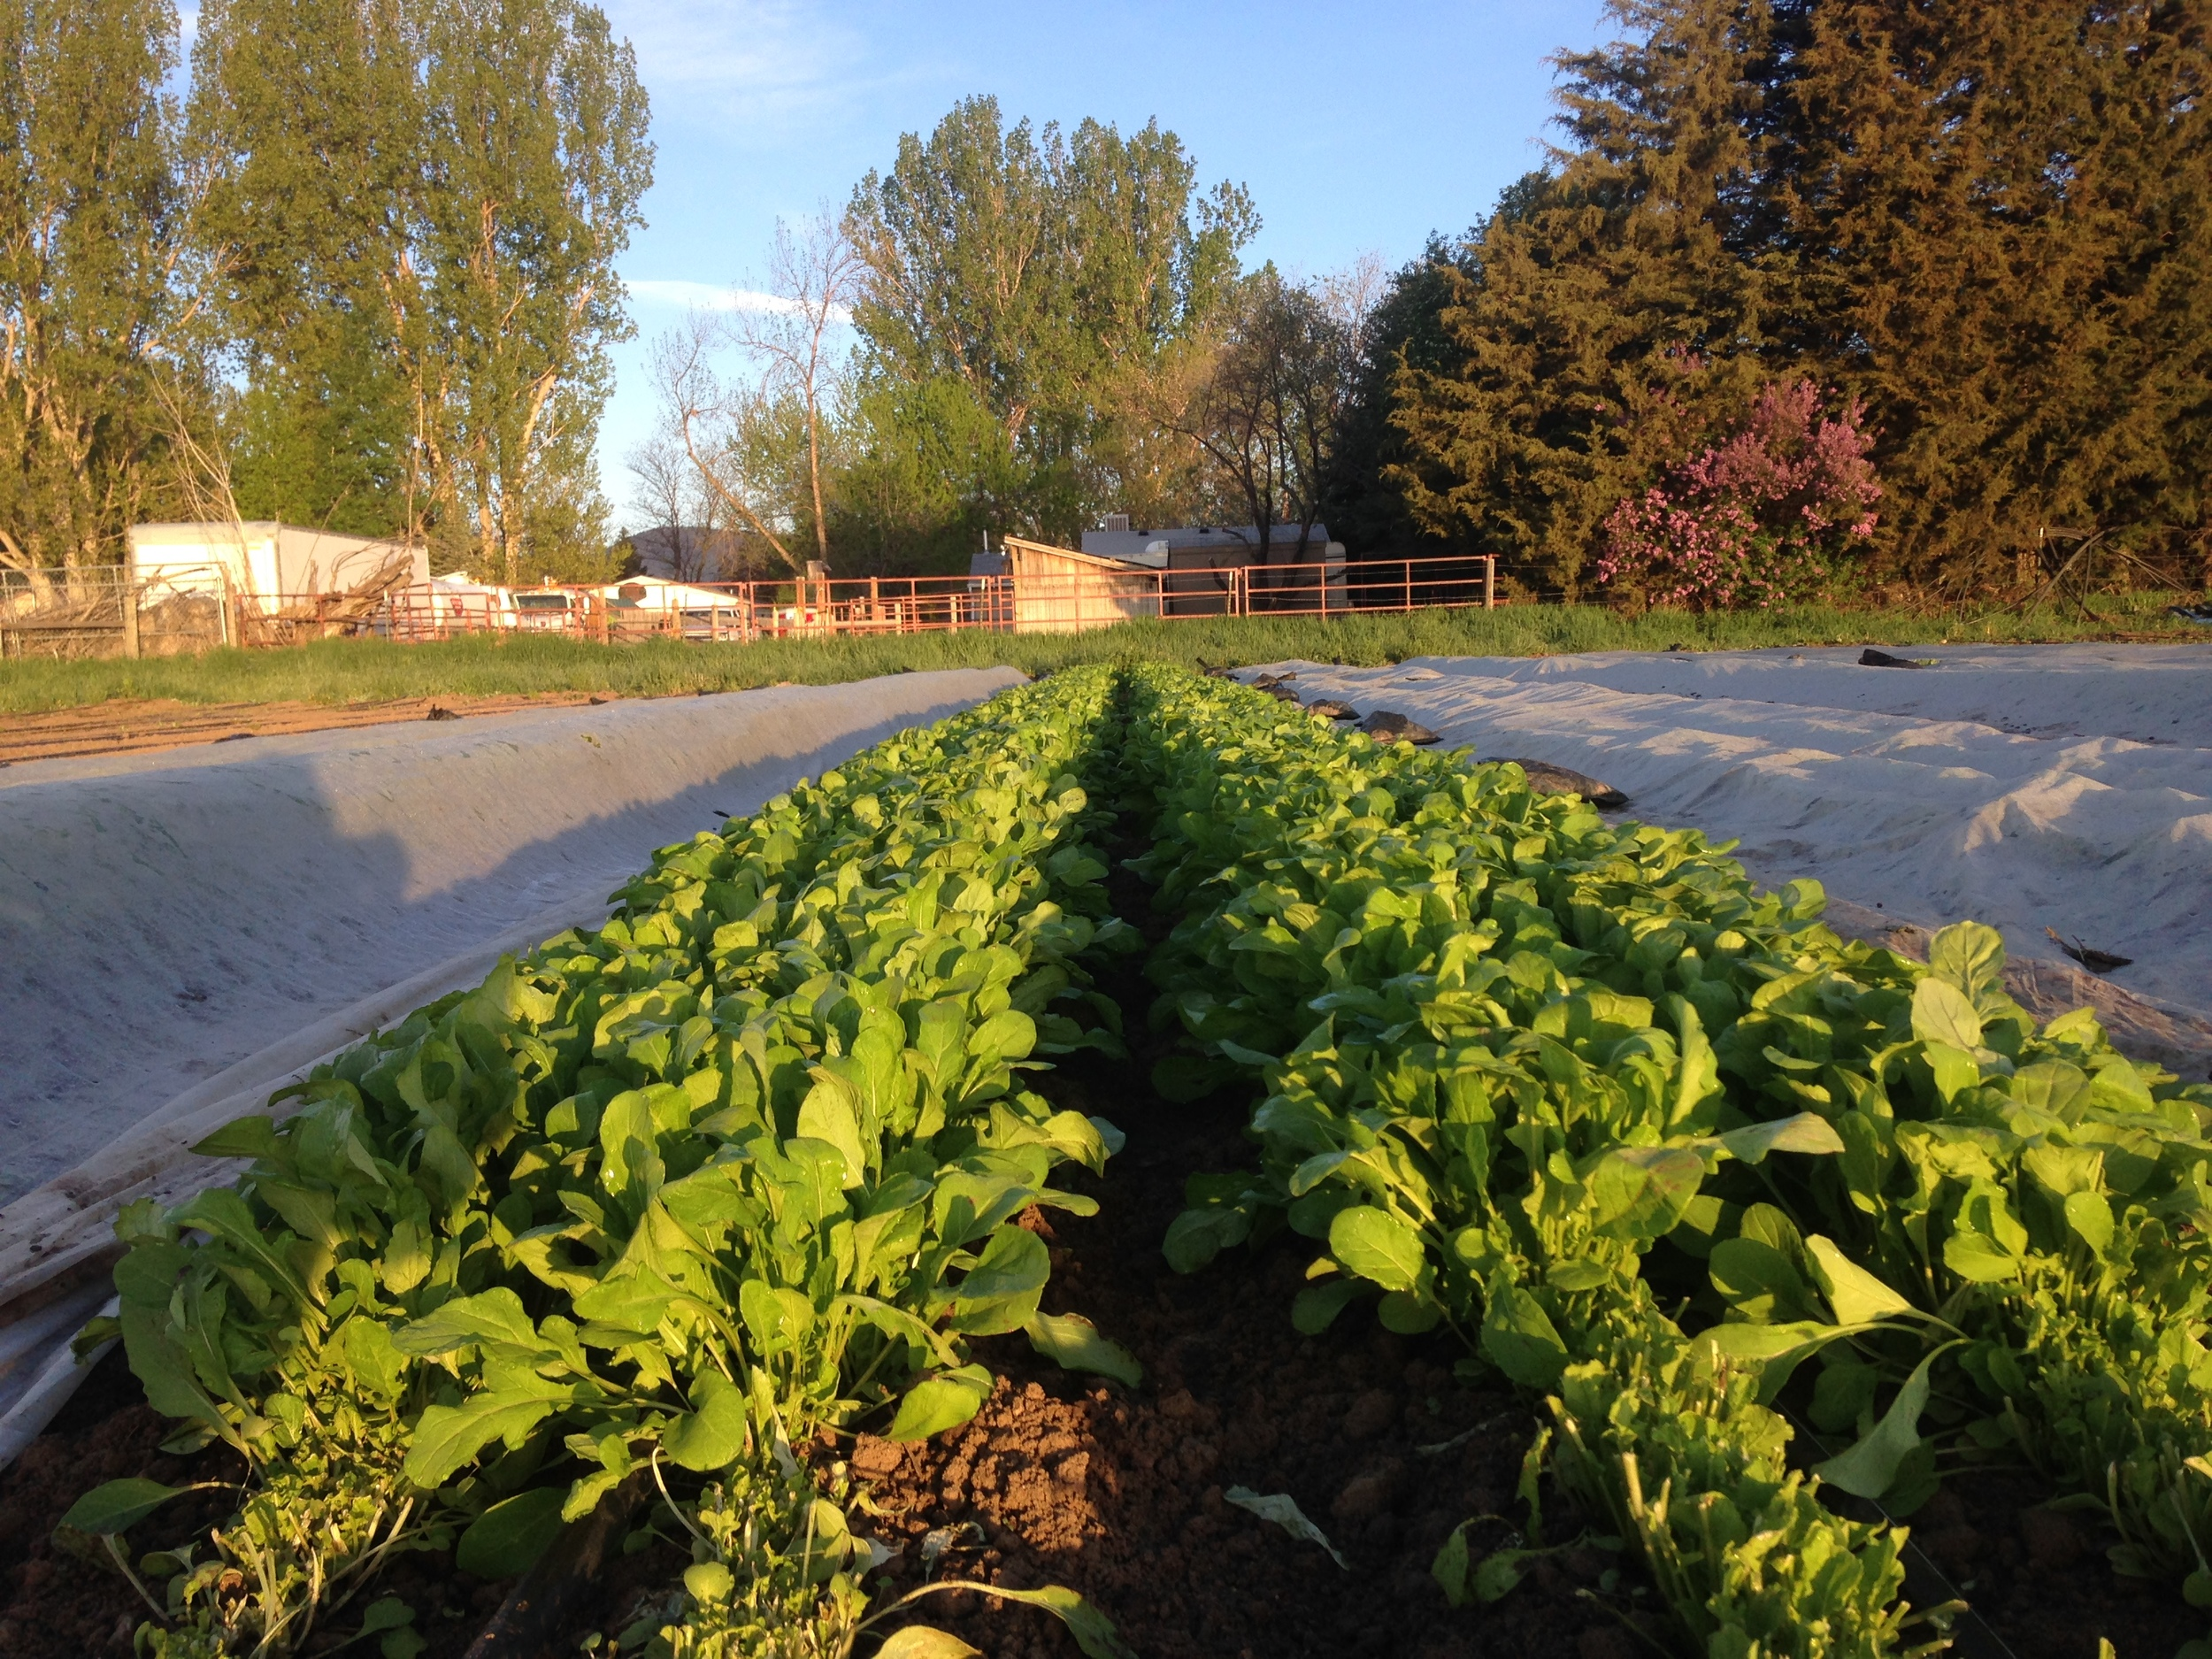 Early morning arugula harvest at Native Hill Farm. (Photo by Farmer Grace)